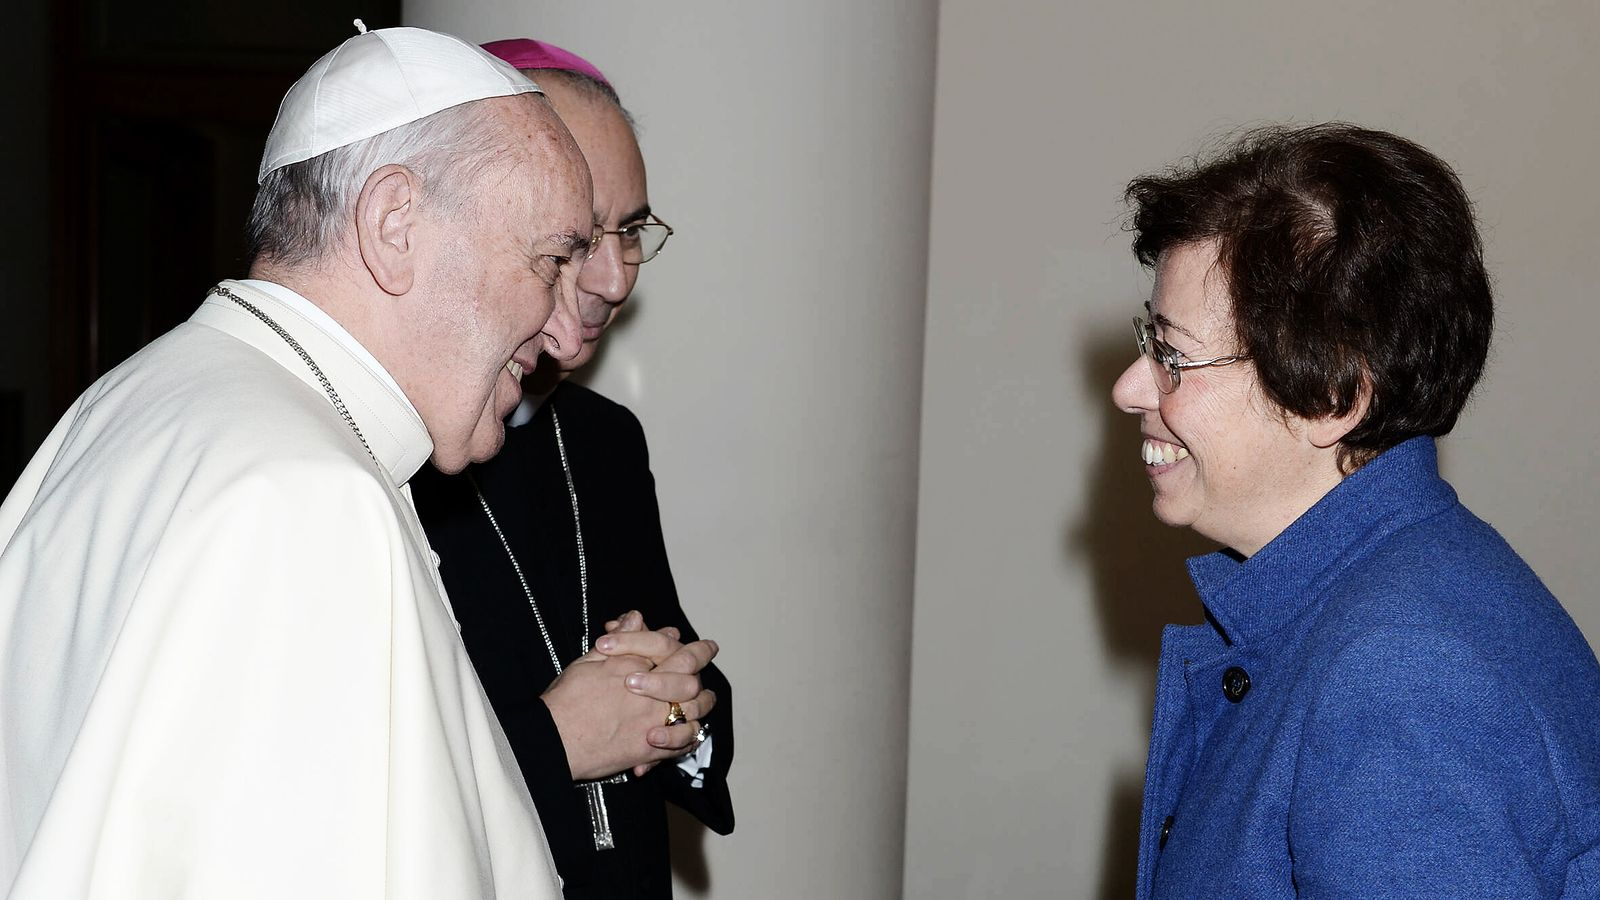 NO FRANCE - NO SWITZERLAND: January 15,2020 : Pope Francis appoints Dr Francesca Di Giovanni as under-secretary in the S